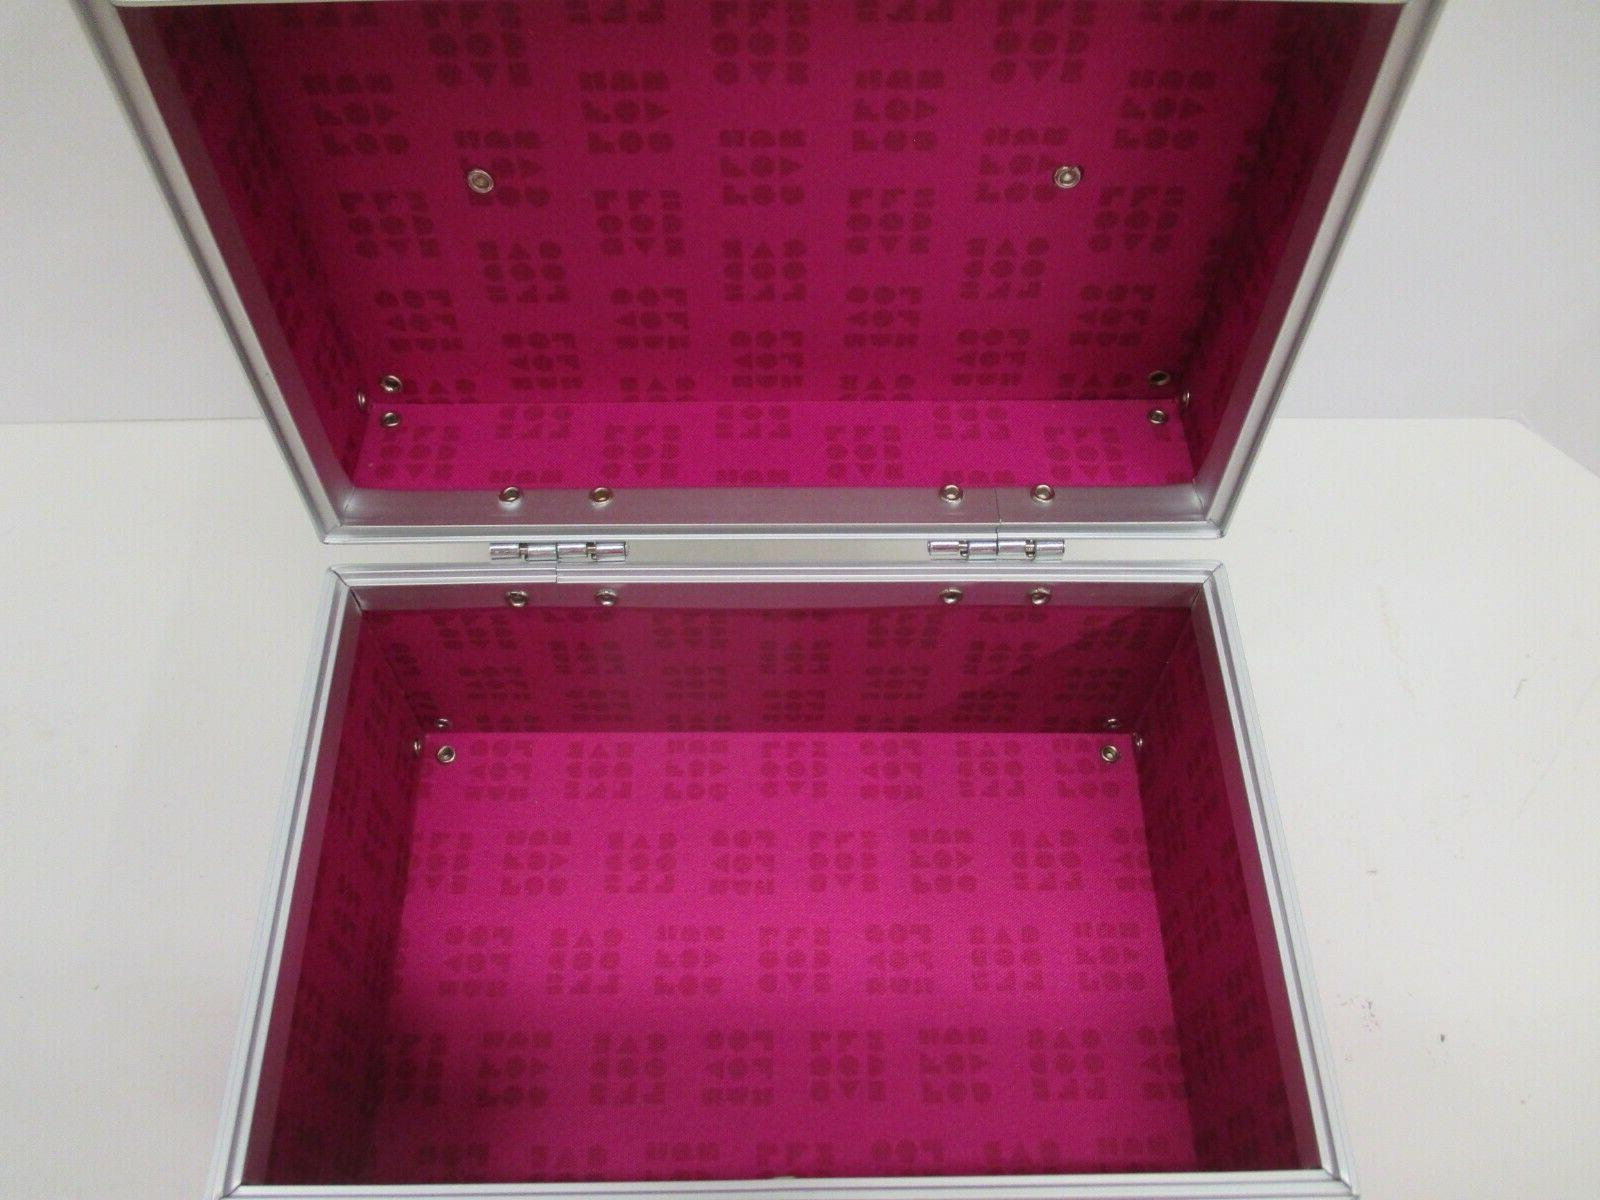 Caboodles Aluminum Case Cosmetic Jewelry Box 7 x4.5